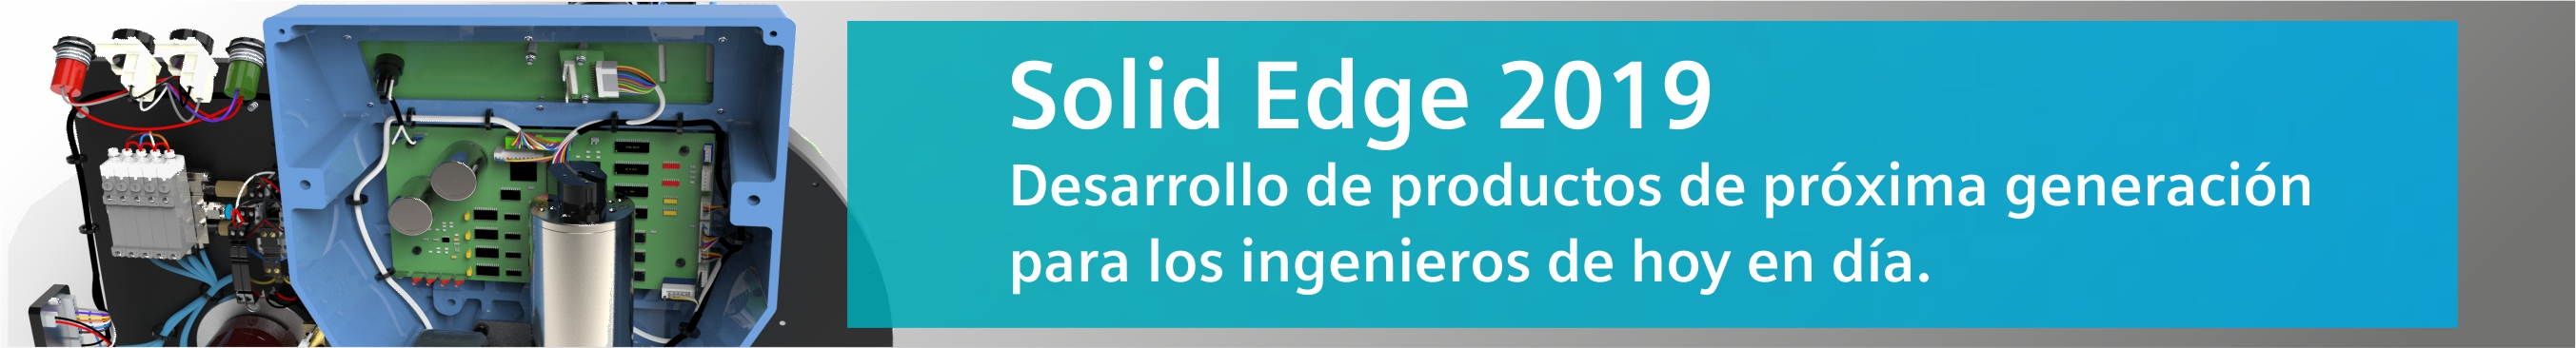 Solid Edge 2019 banner zift